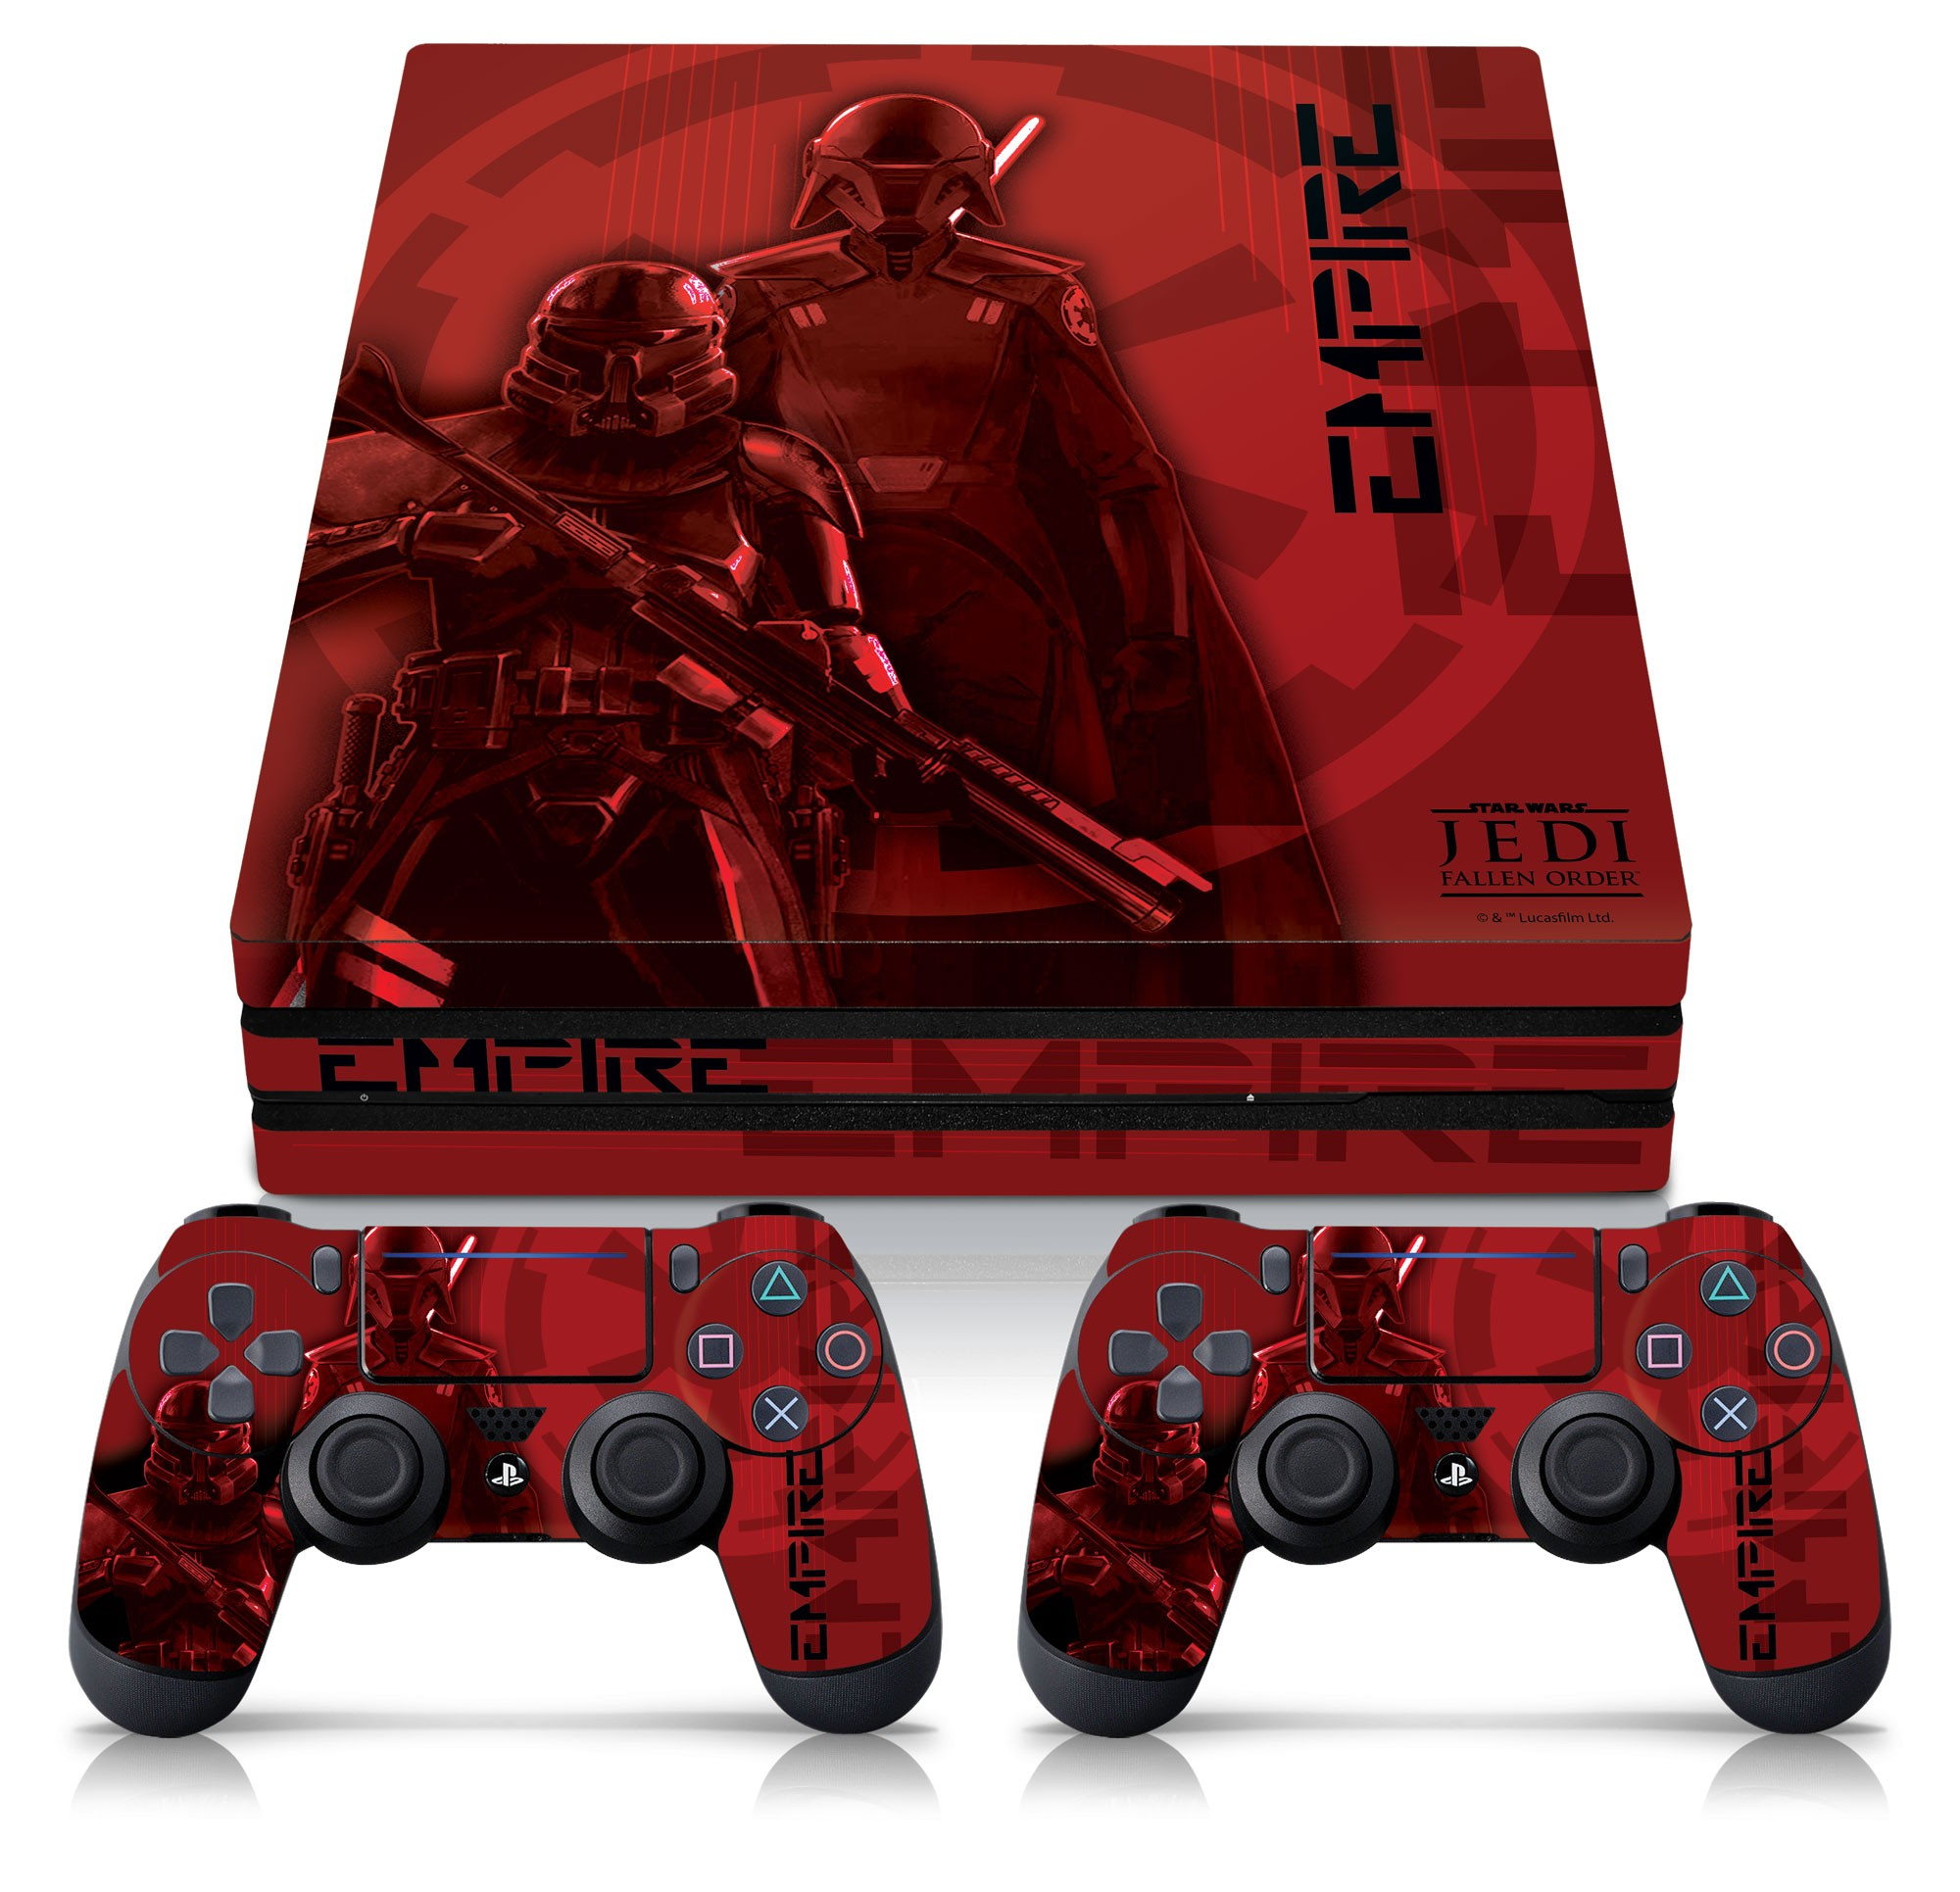 PS4 Pro Console & Controller Skin with a Star Wars Jedi Fallen Order Inquisitor/Purge Trooper Design, Image 1